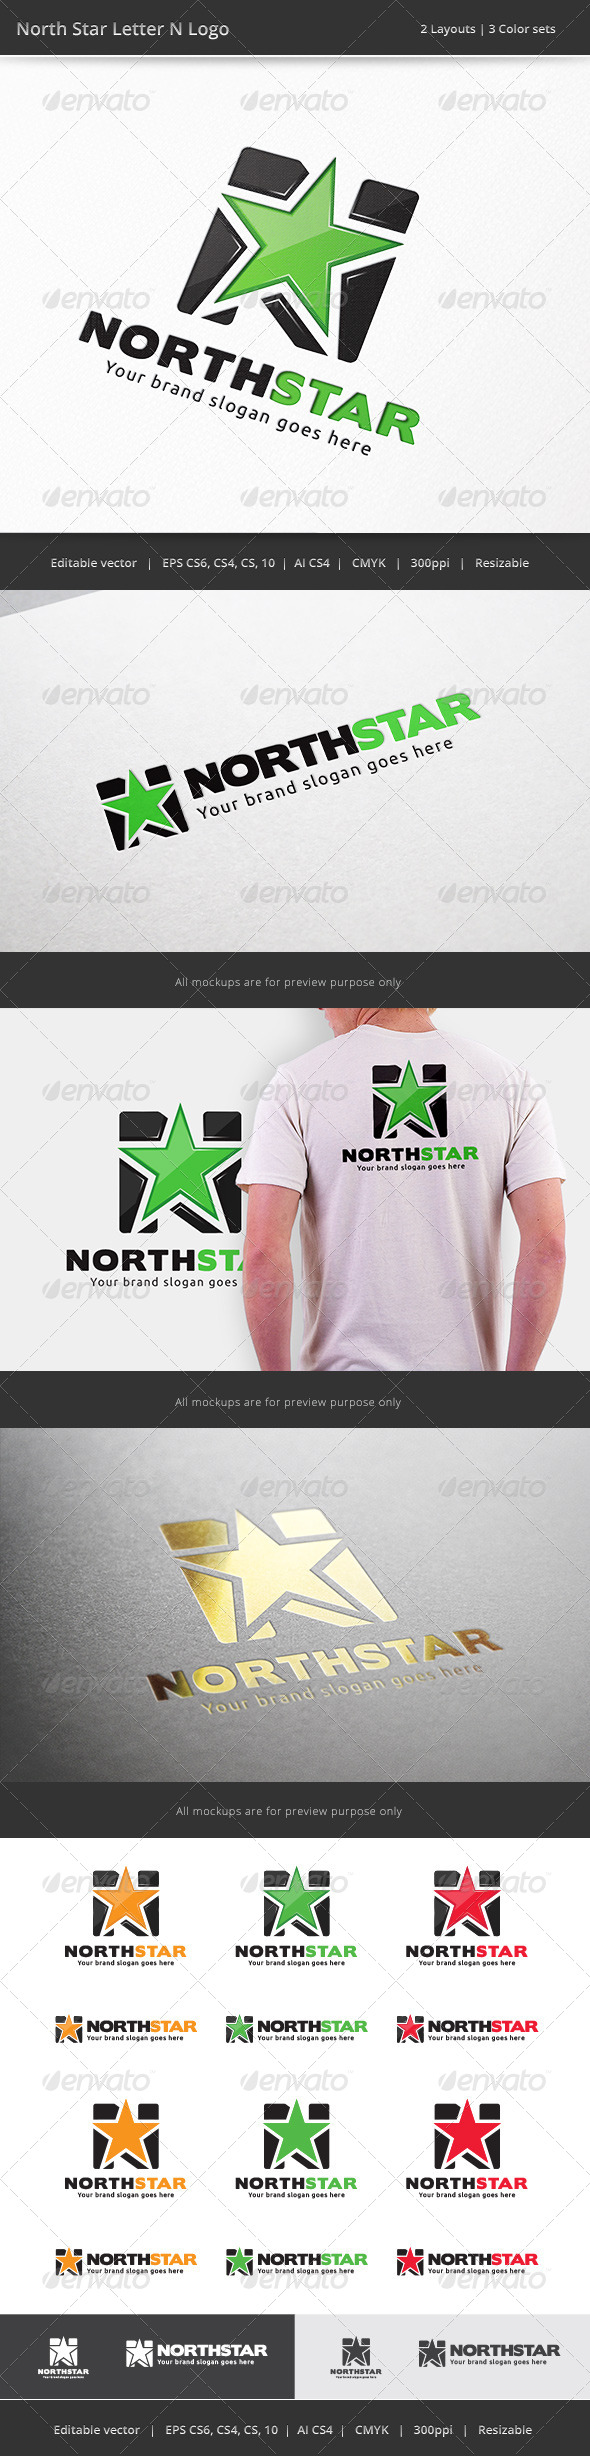 GraphicRiver North Star Letter N Logo 7463113